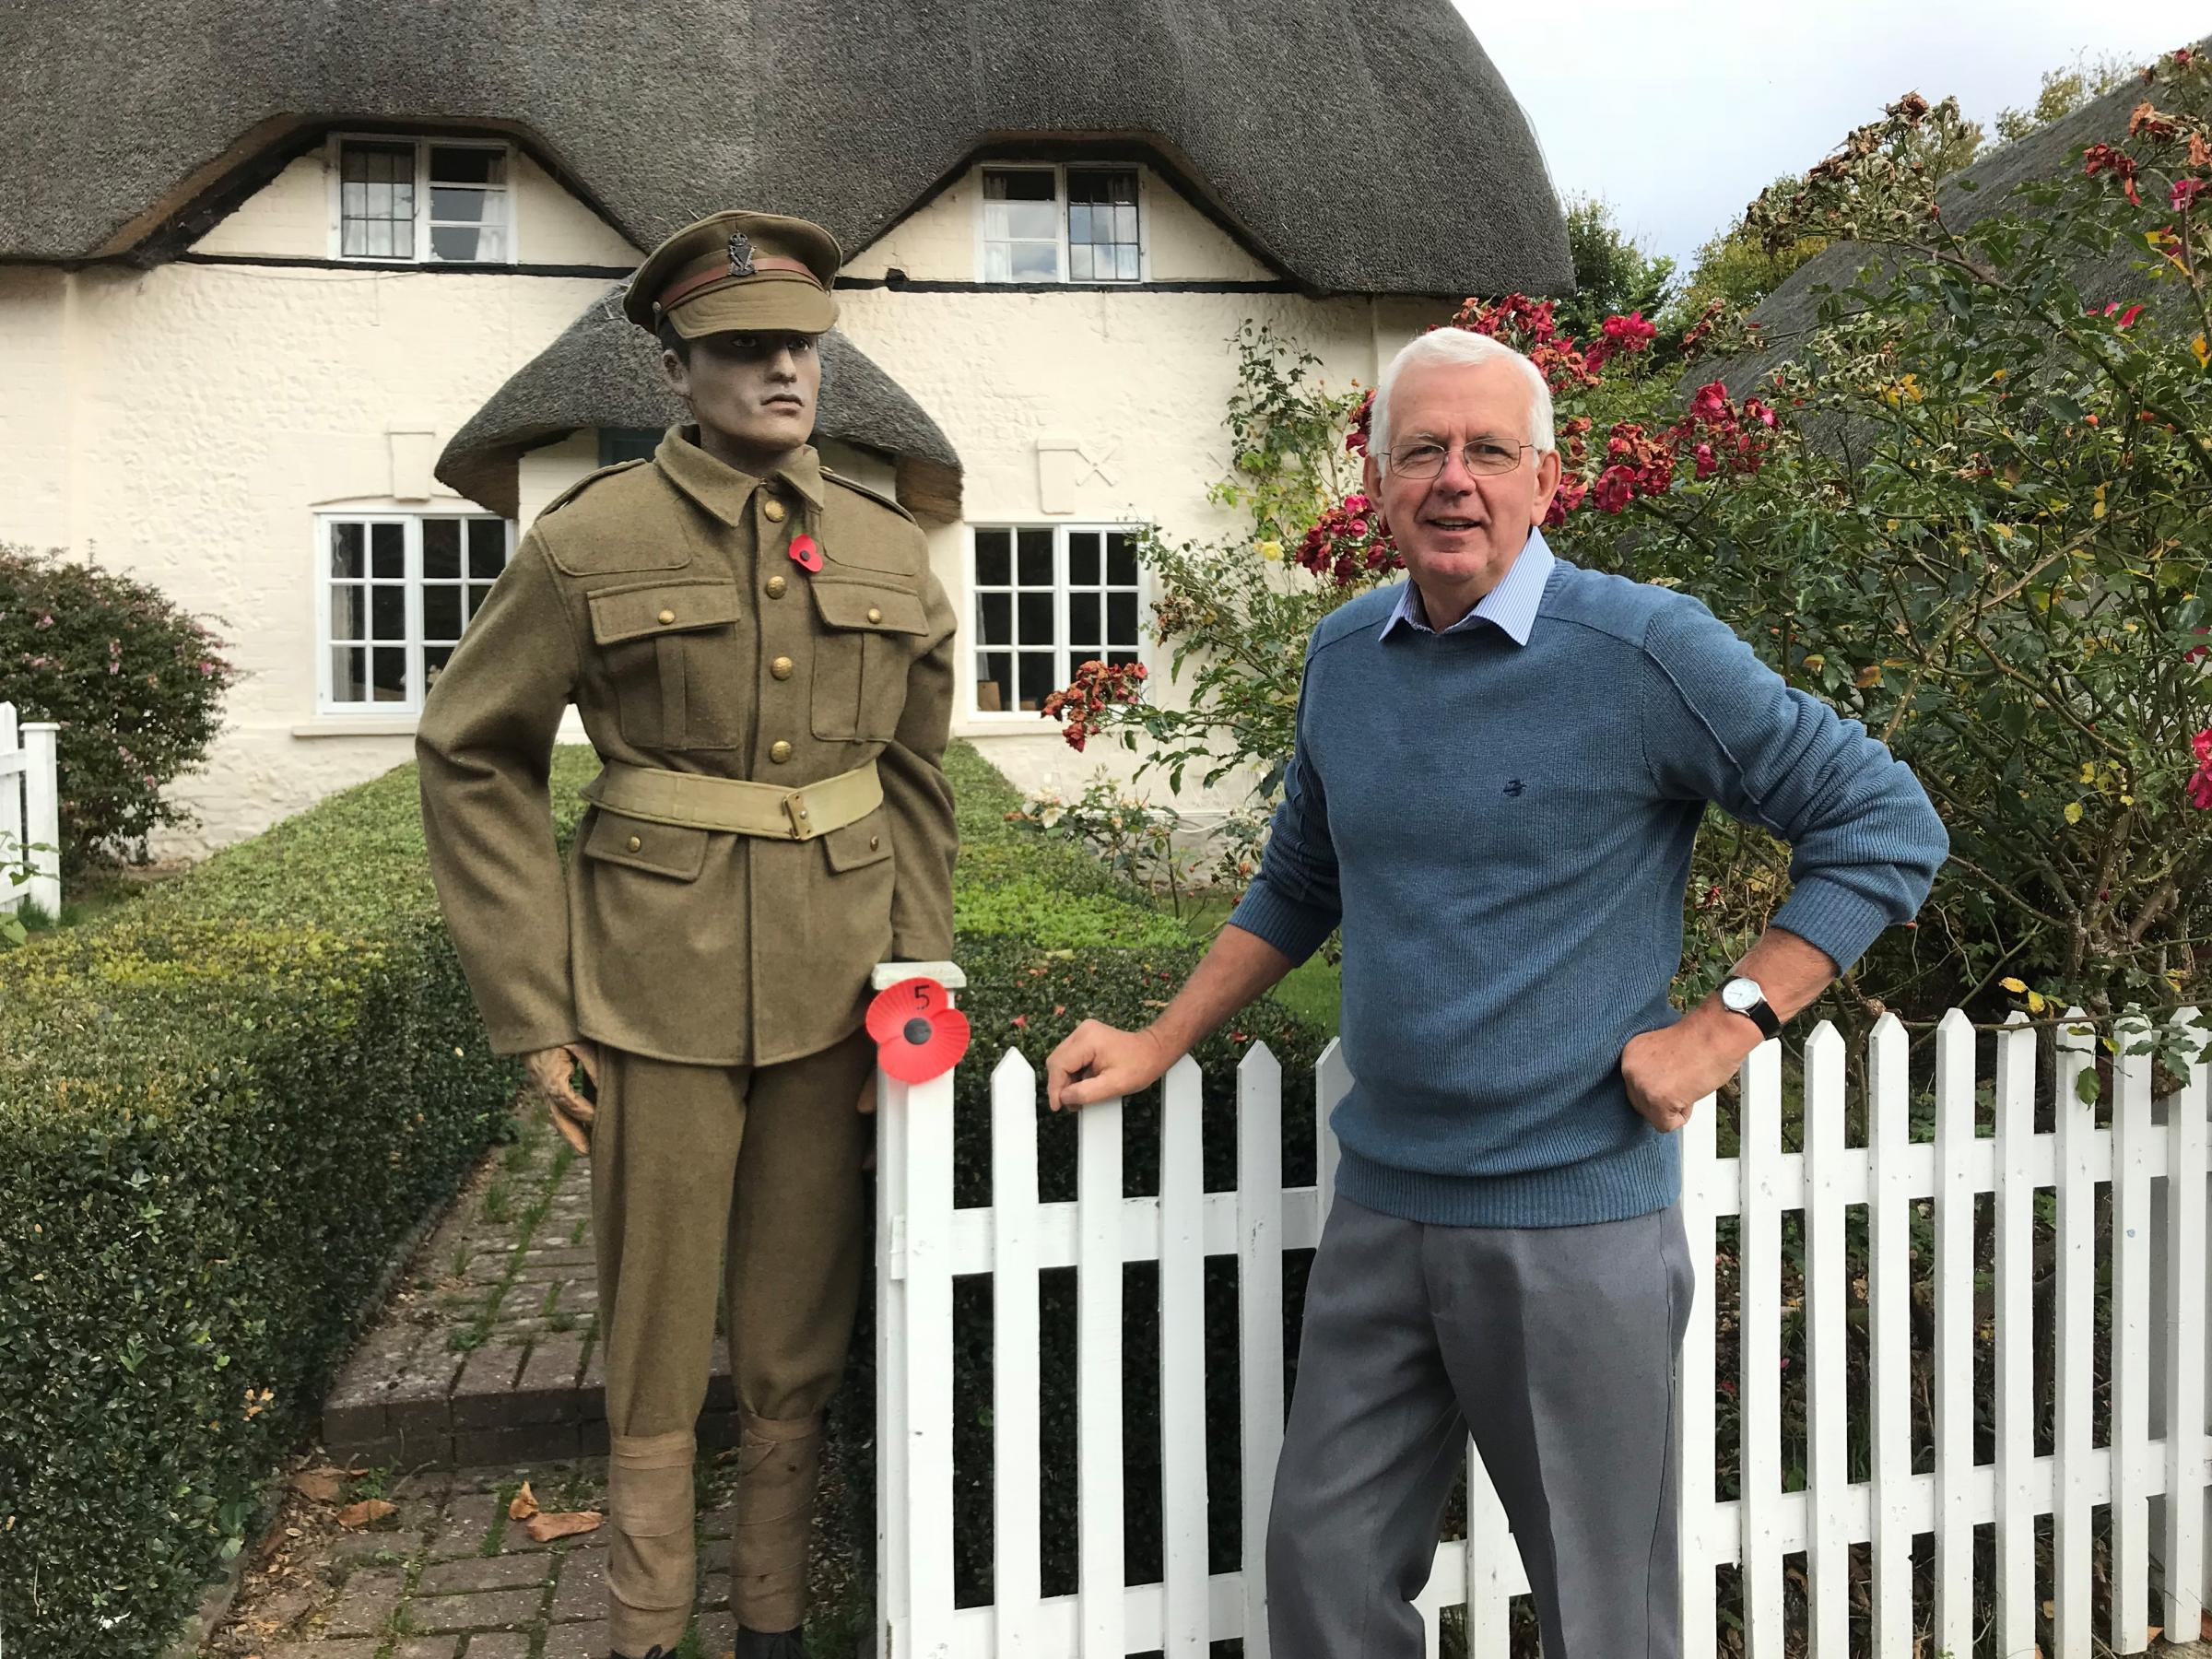 Rod Eggington, with a replica soldier, outside one of the houses on the poppy trail